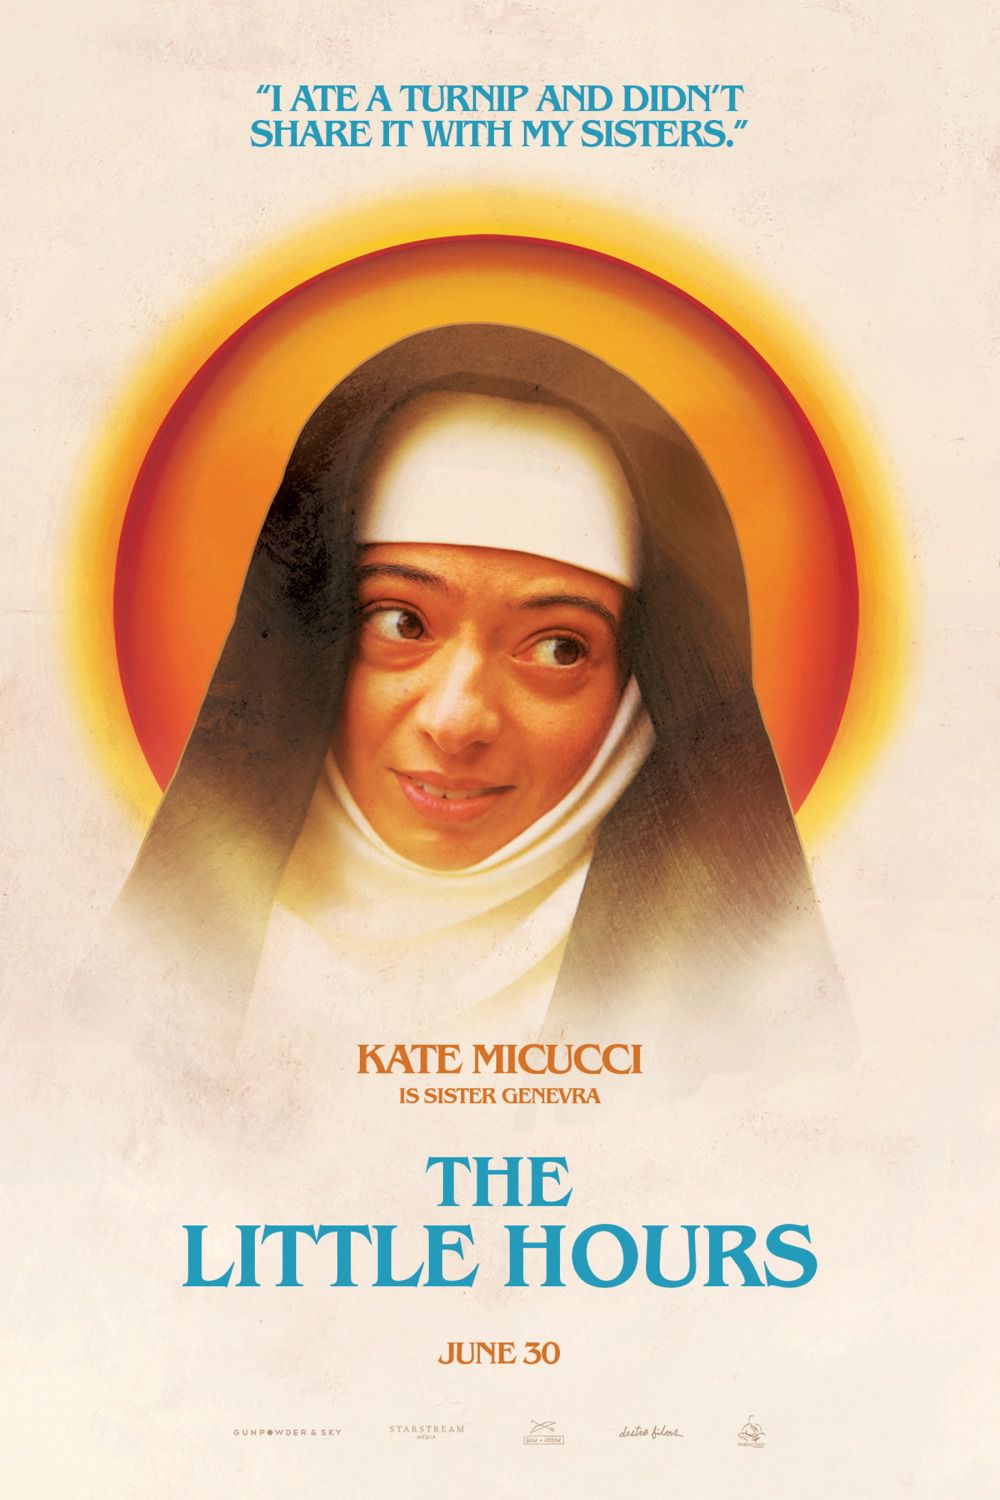 Little Hours - poster - Kate Micucci - Sister Genevra